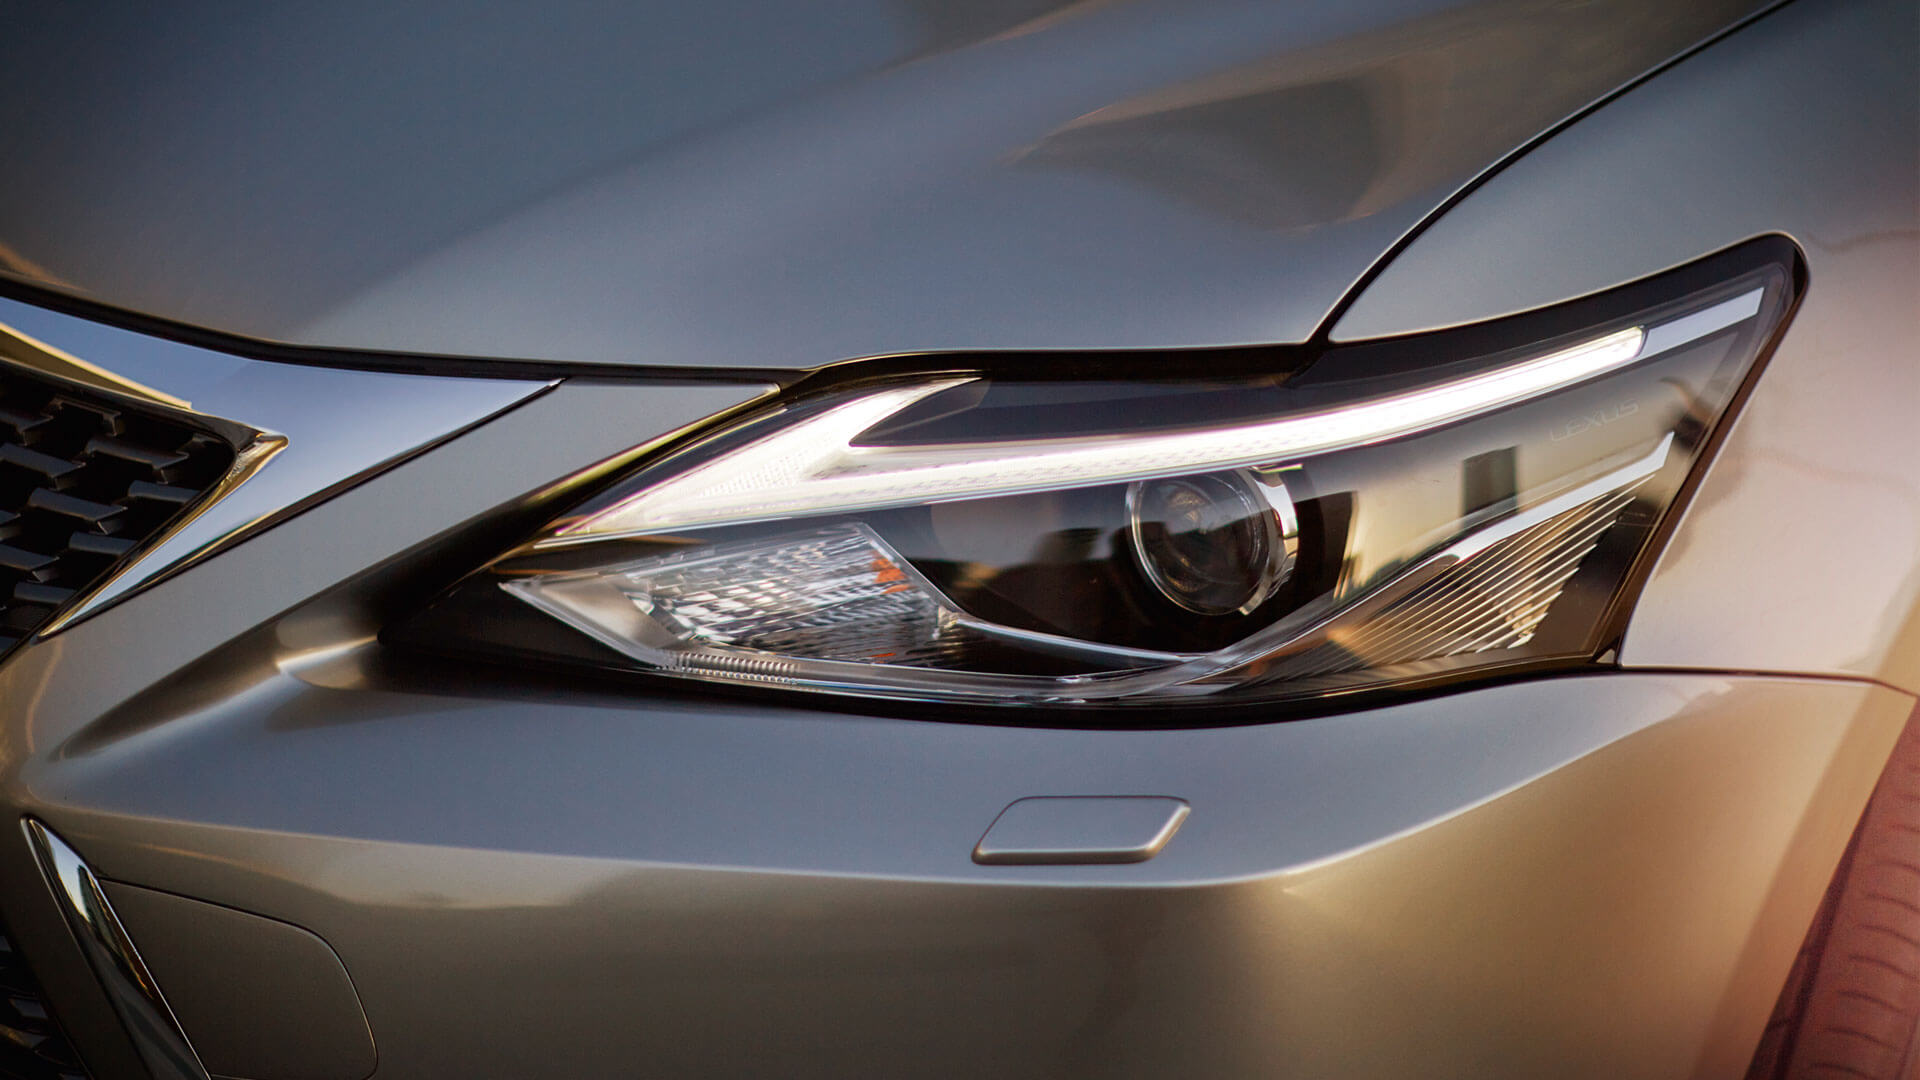 2018 lexus ct 200h my18 features led head lights